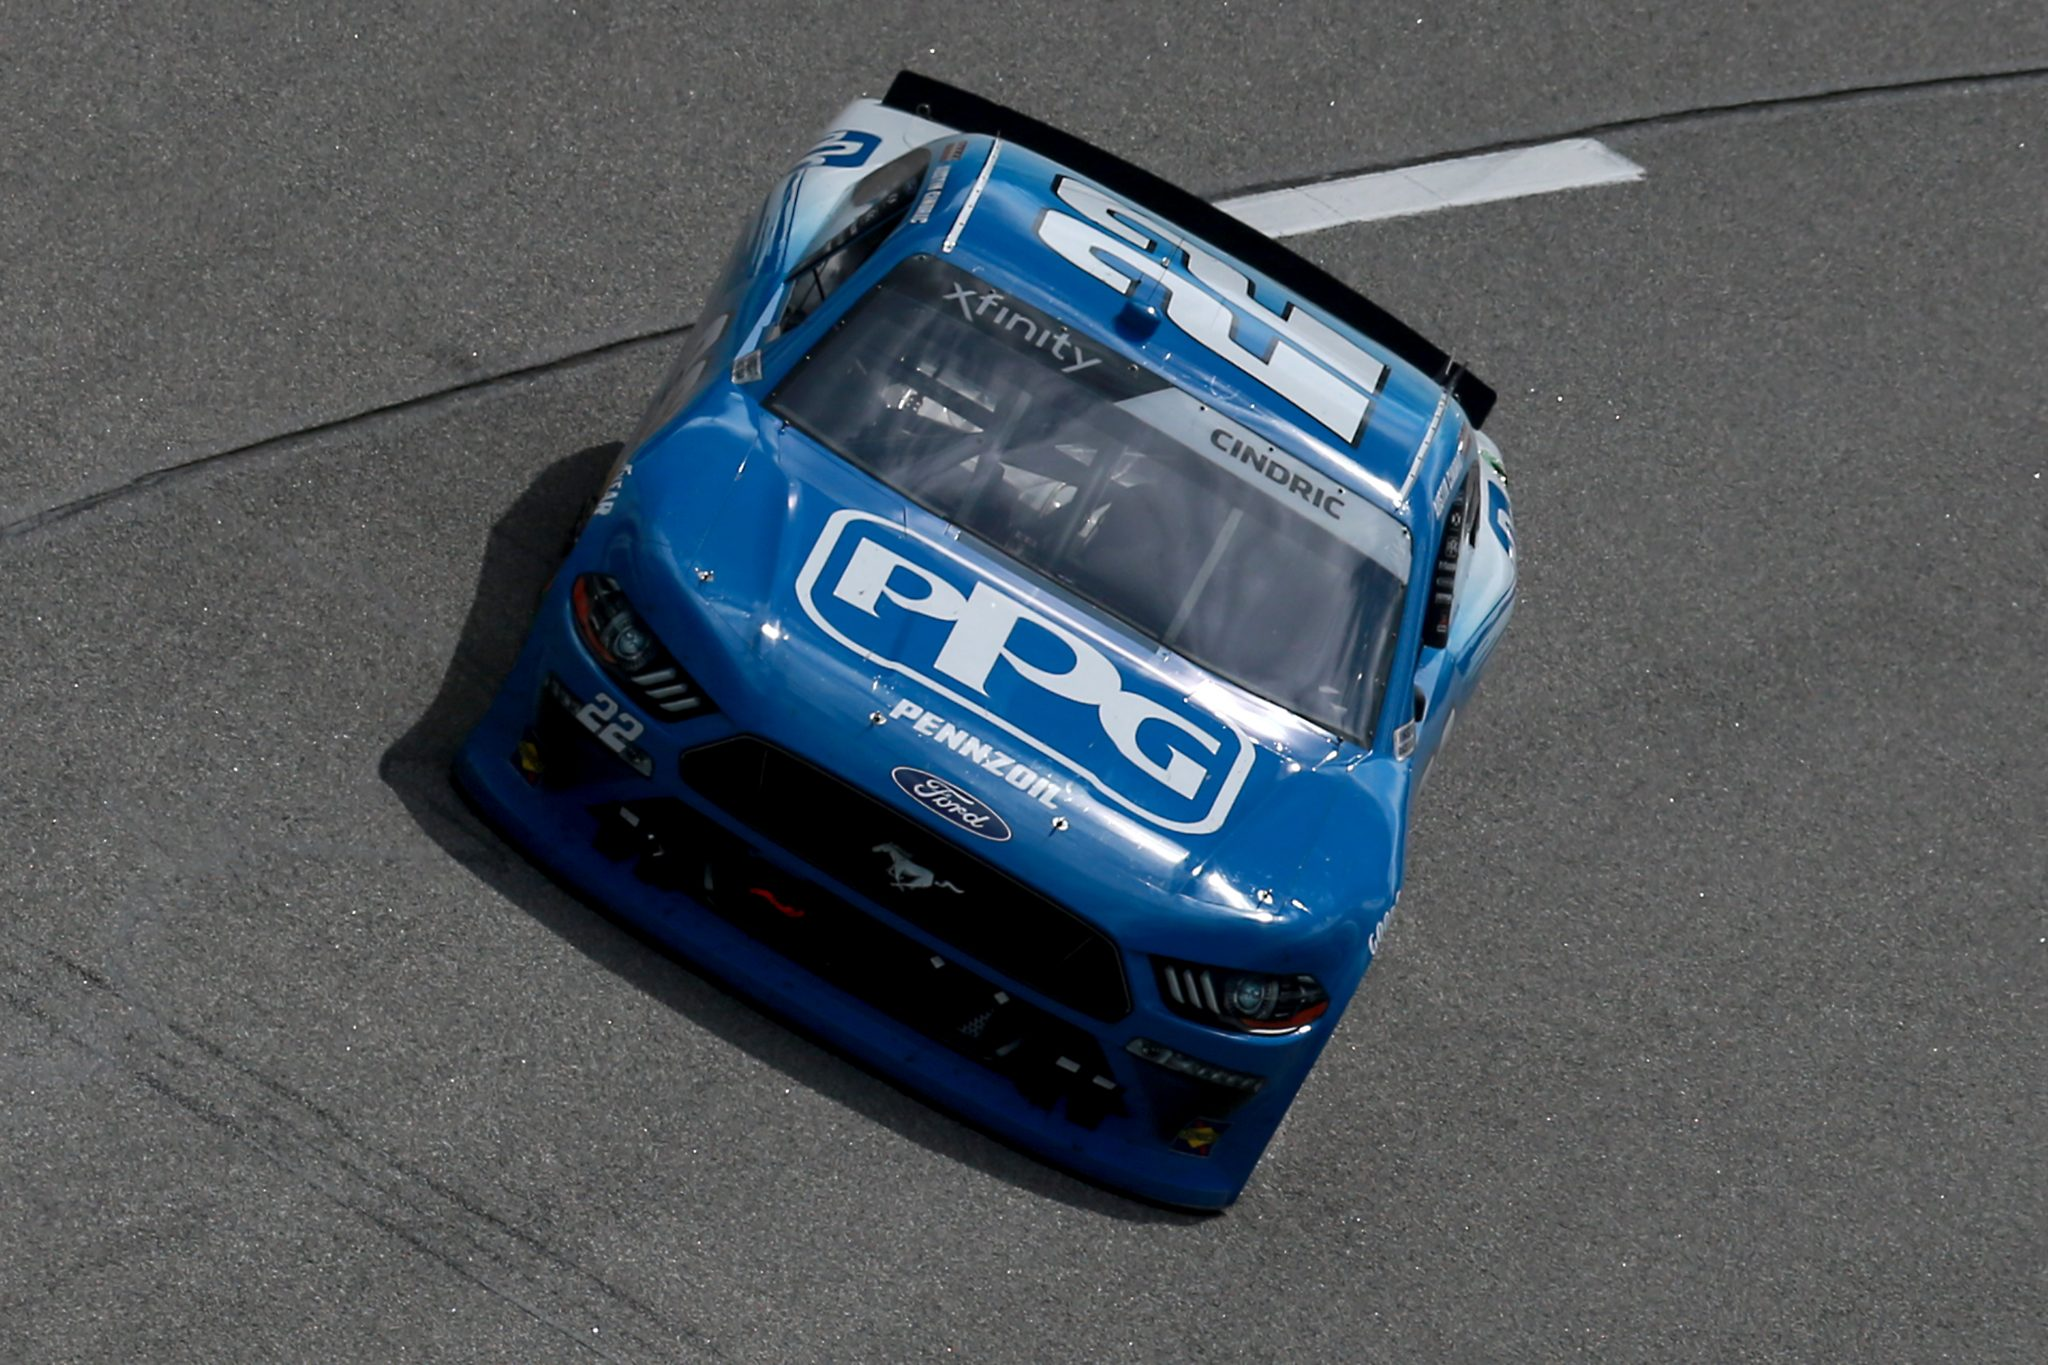 RICHMOND, VIRGINIA - SEPTEMBER 12: Austin Cindric, driver of the #22 PPG Ford, drives during the NASCAR Xfinity Series Virginia is for Racing Lovers 250 at Richmond Raceway on September 12, 2020 in Richmond, Virginia. (Photo by Sean Gardner/Getty Images) | Getty Images